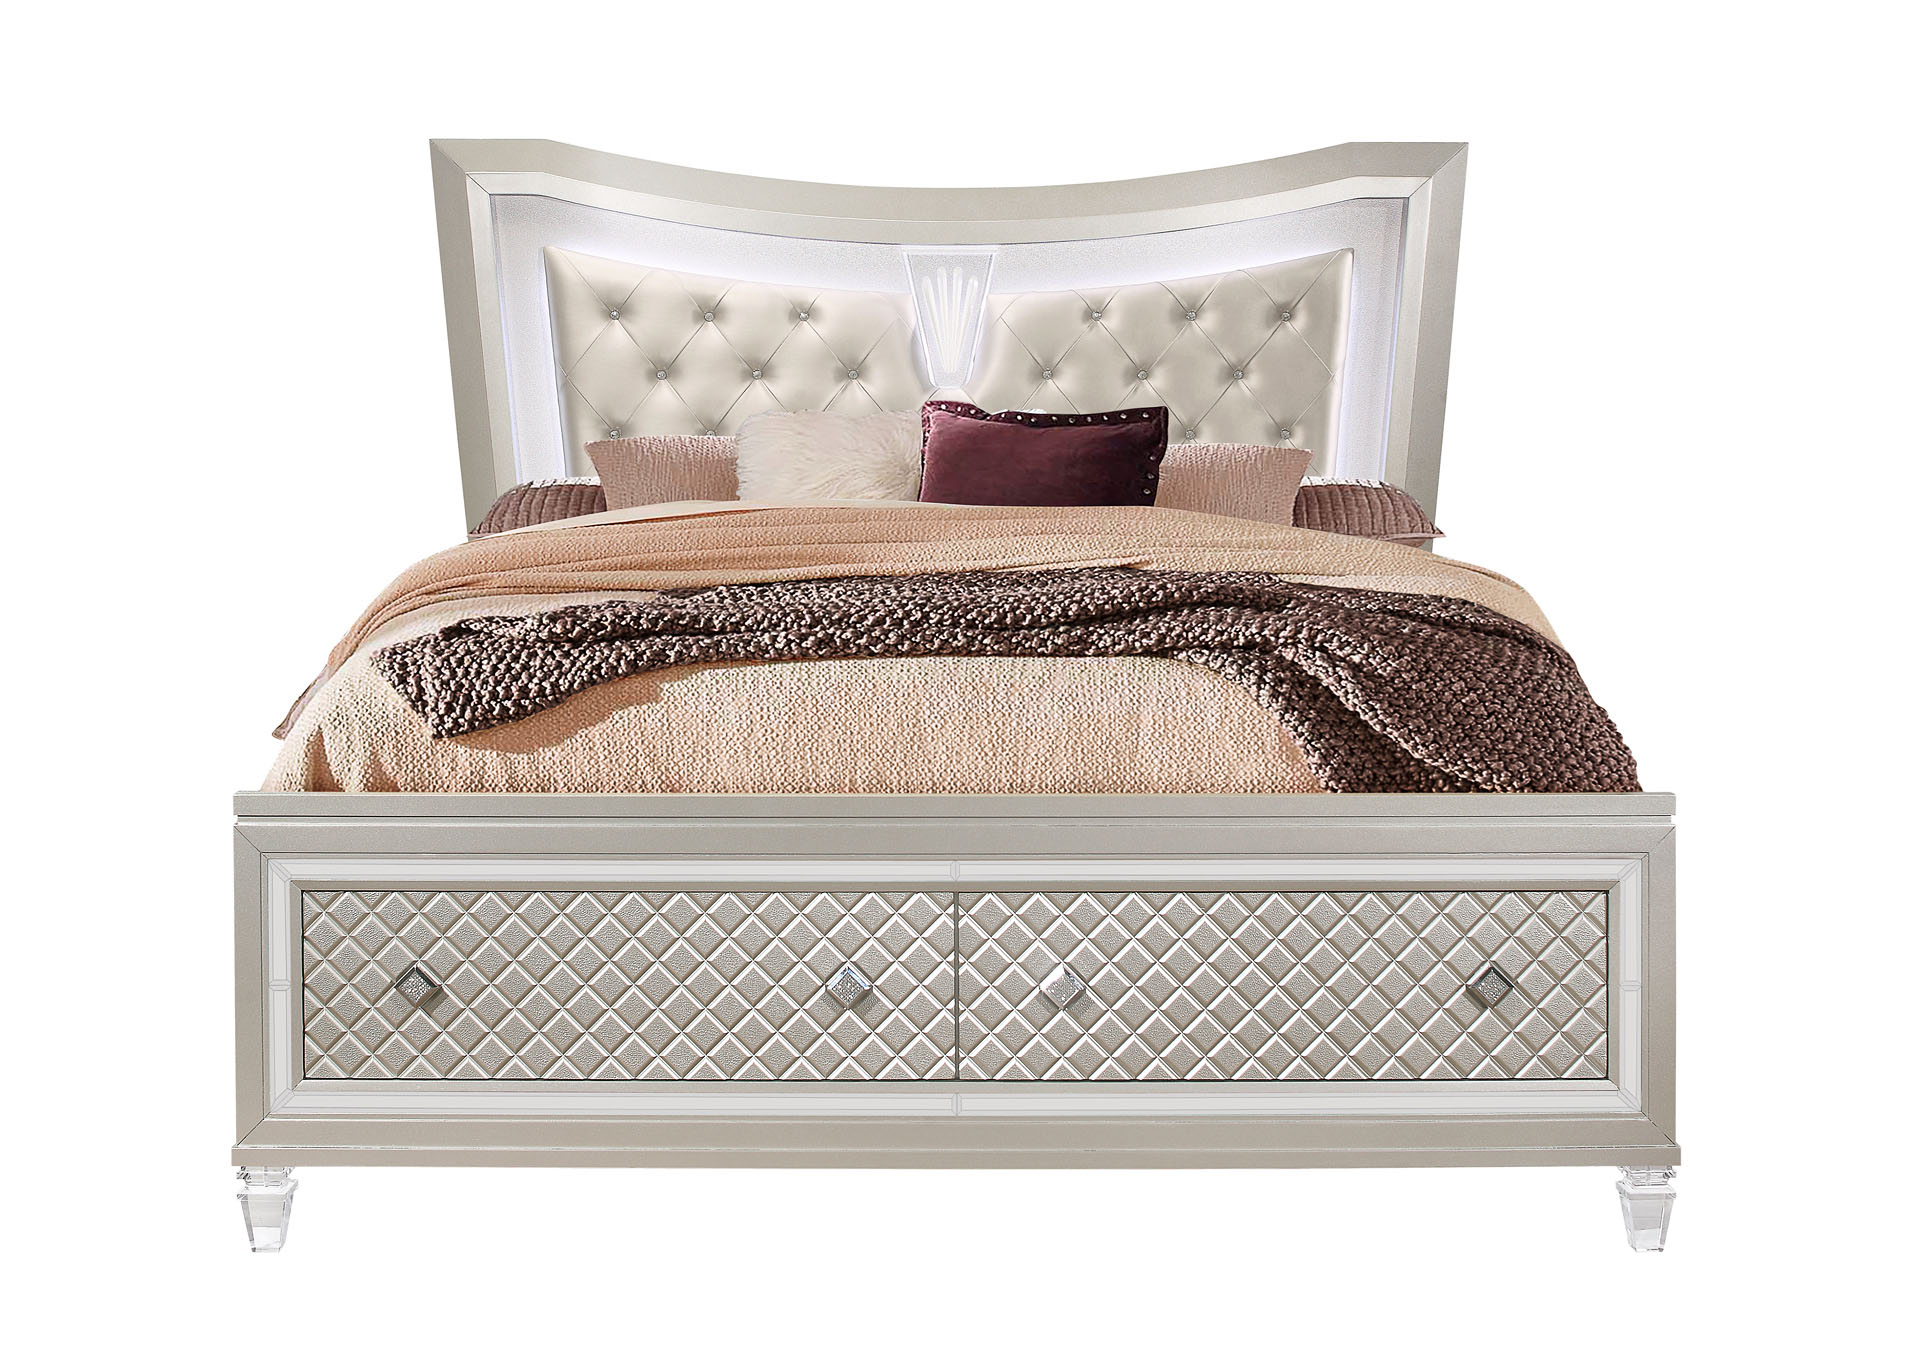 Paris Champagne Queen Bed,Global Furniture USA